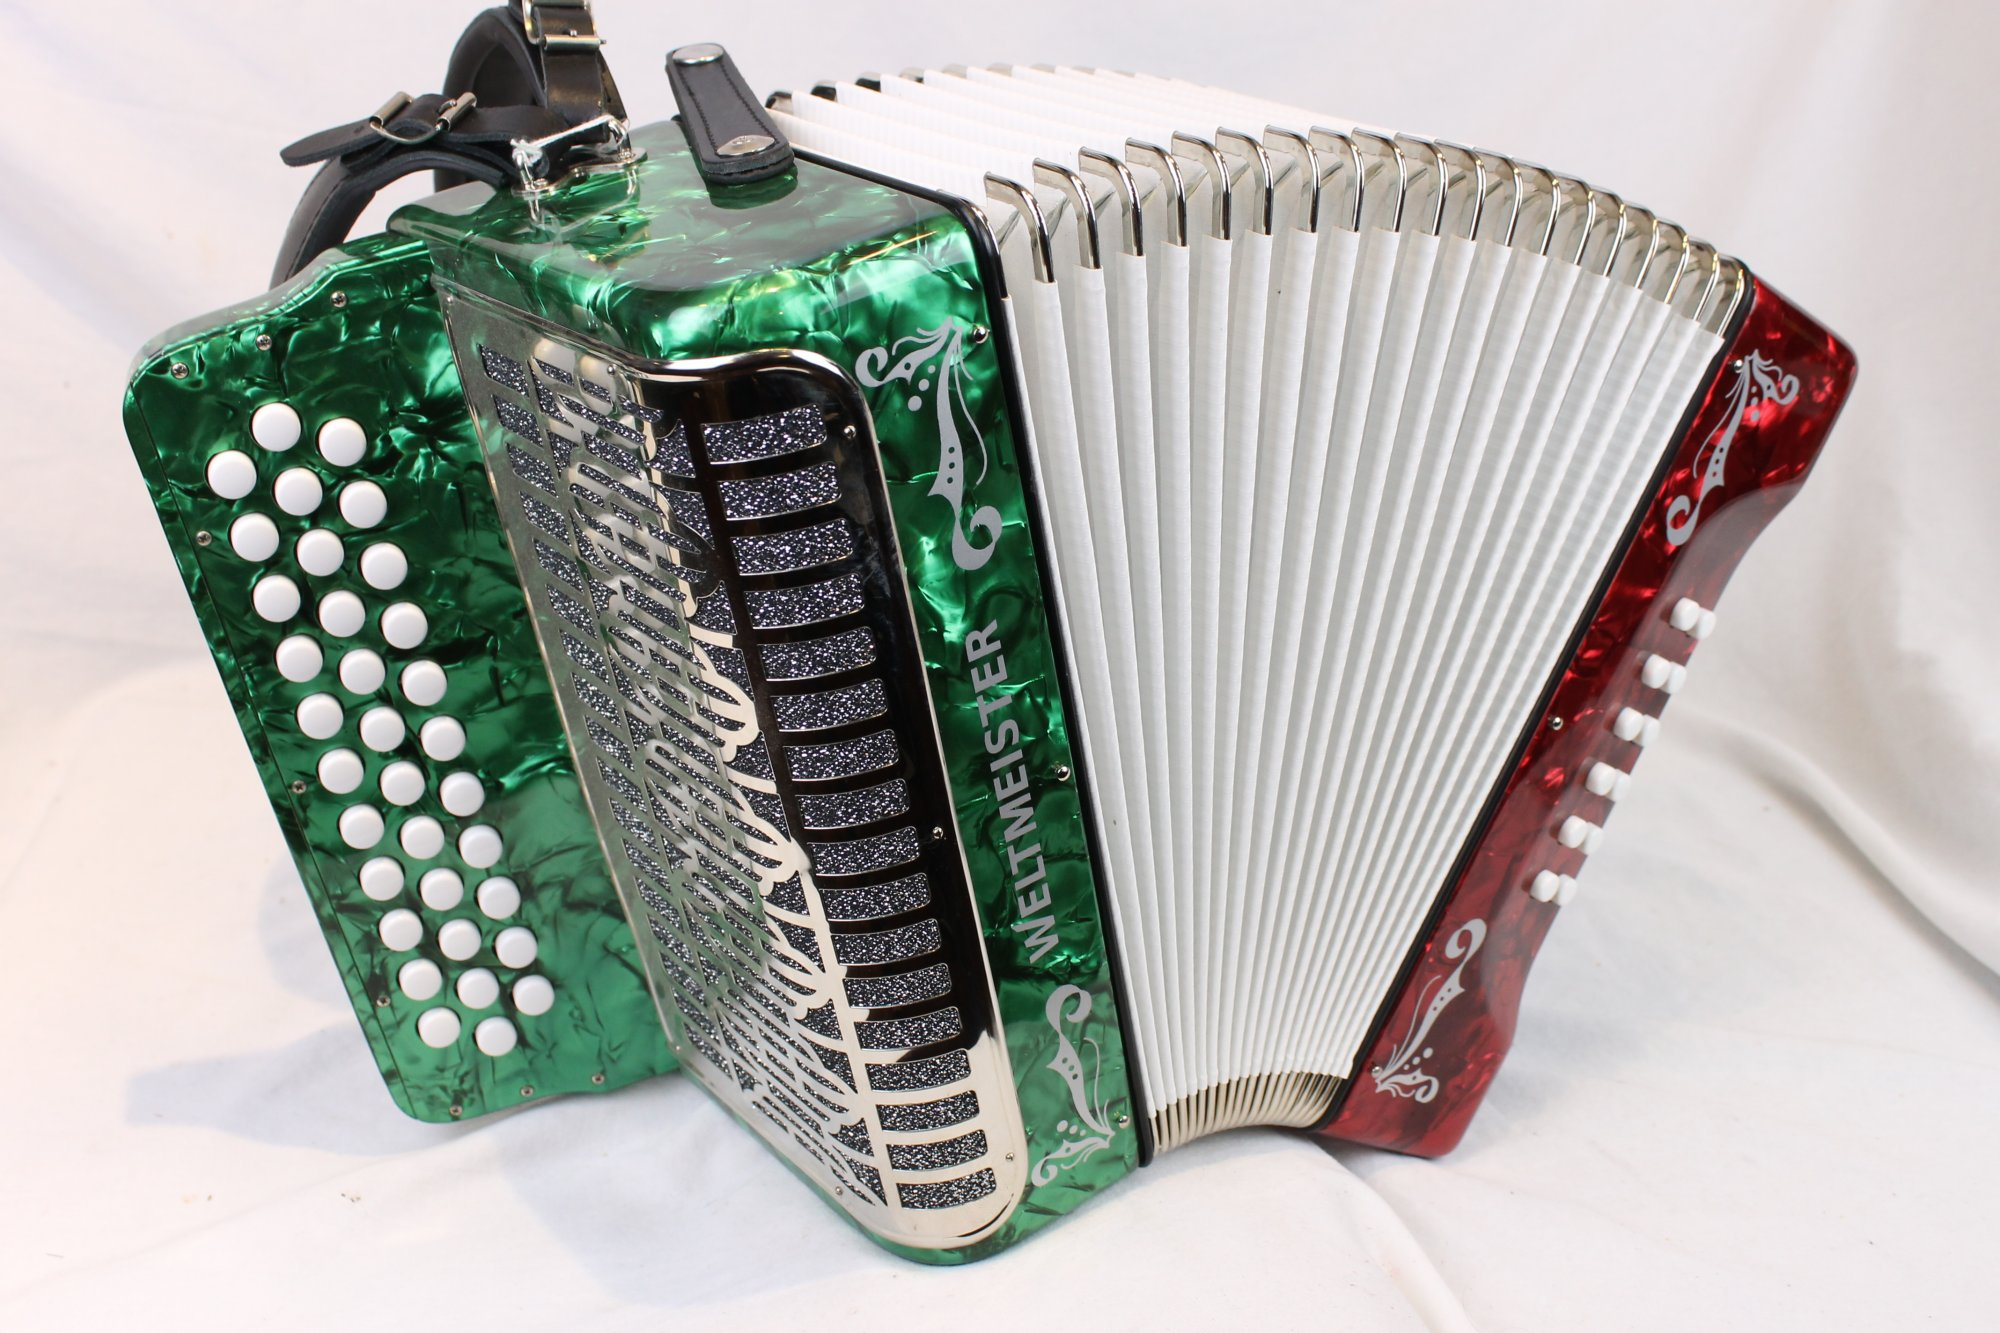 NEW Bandera Weltmeister 571 Diatonic Button Accordion MM FBbEb Fa 34 12 Made in Germany